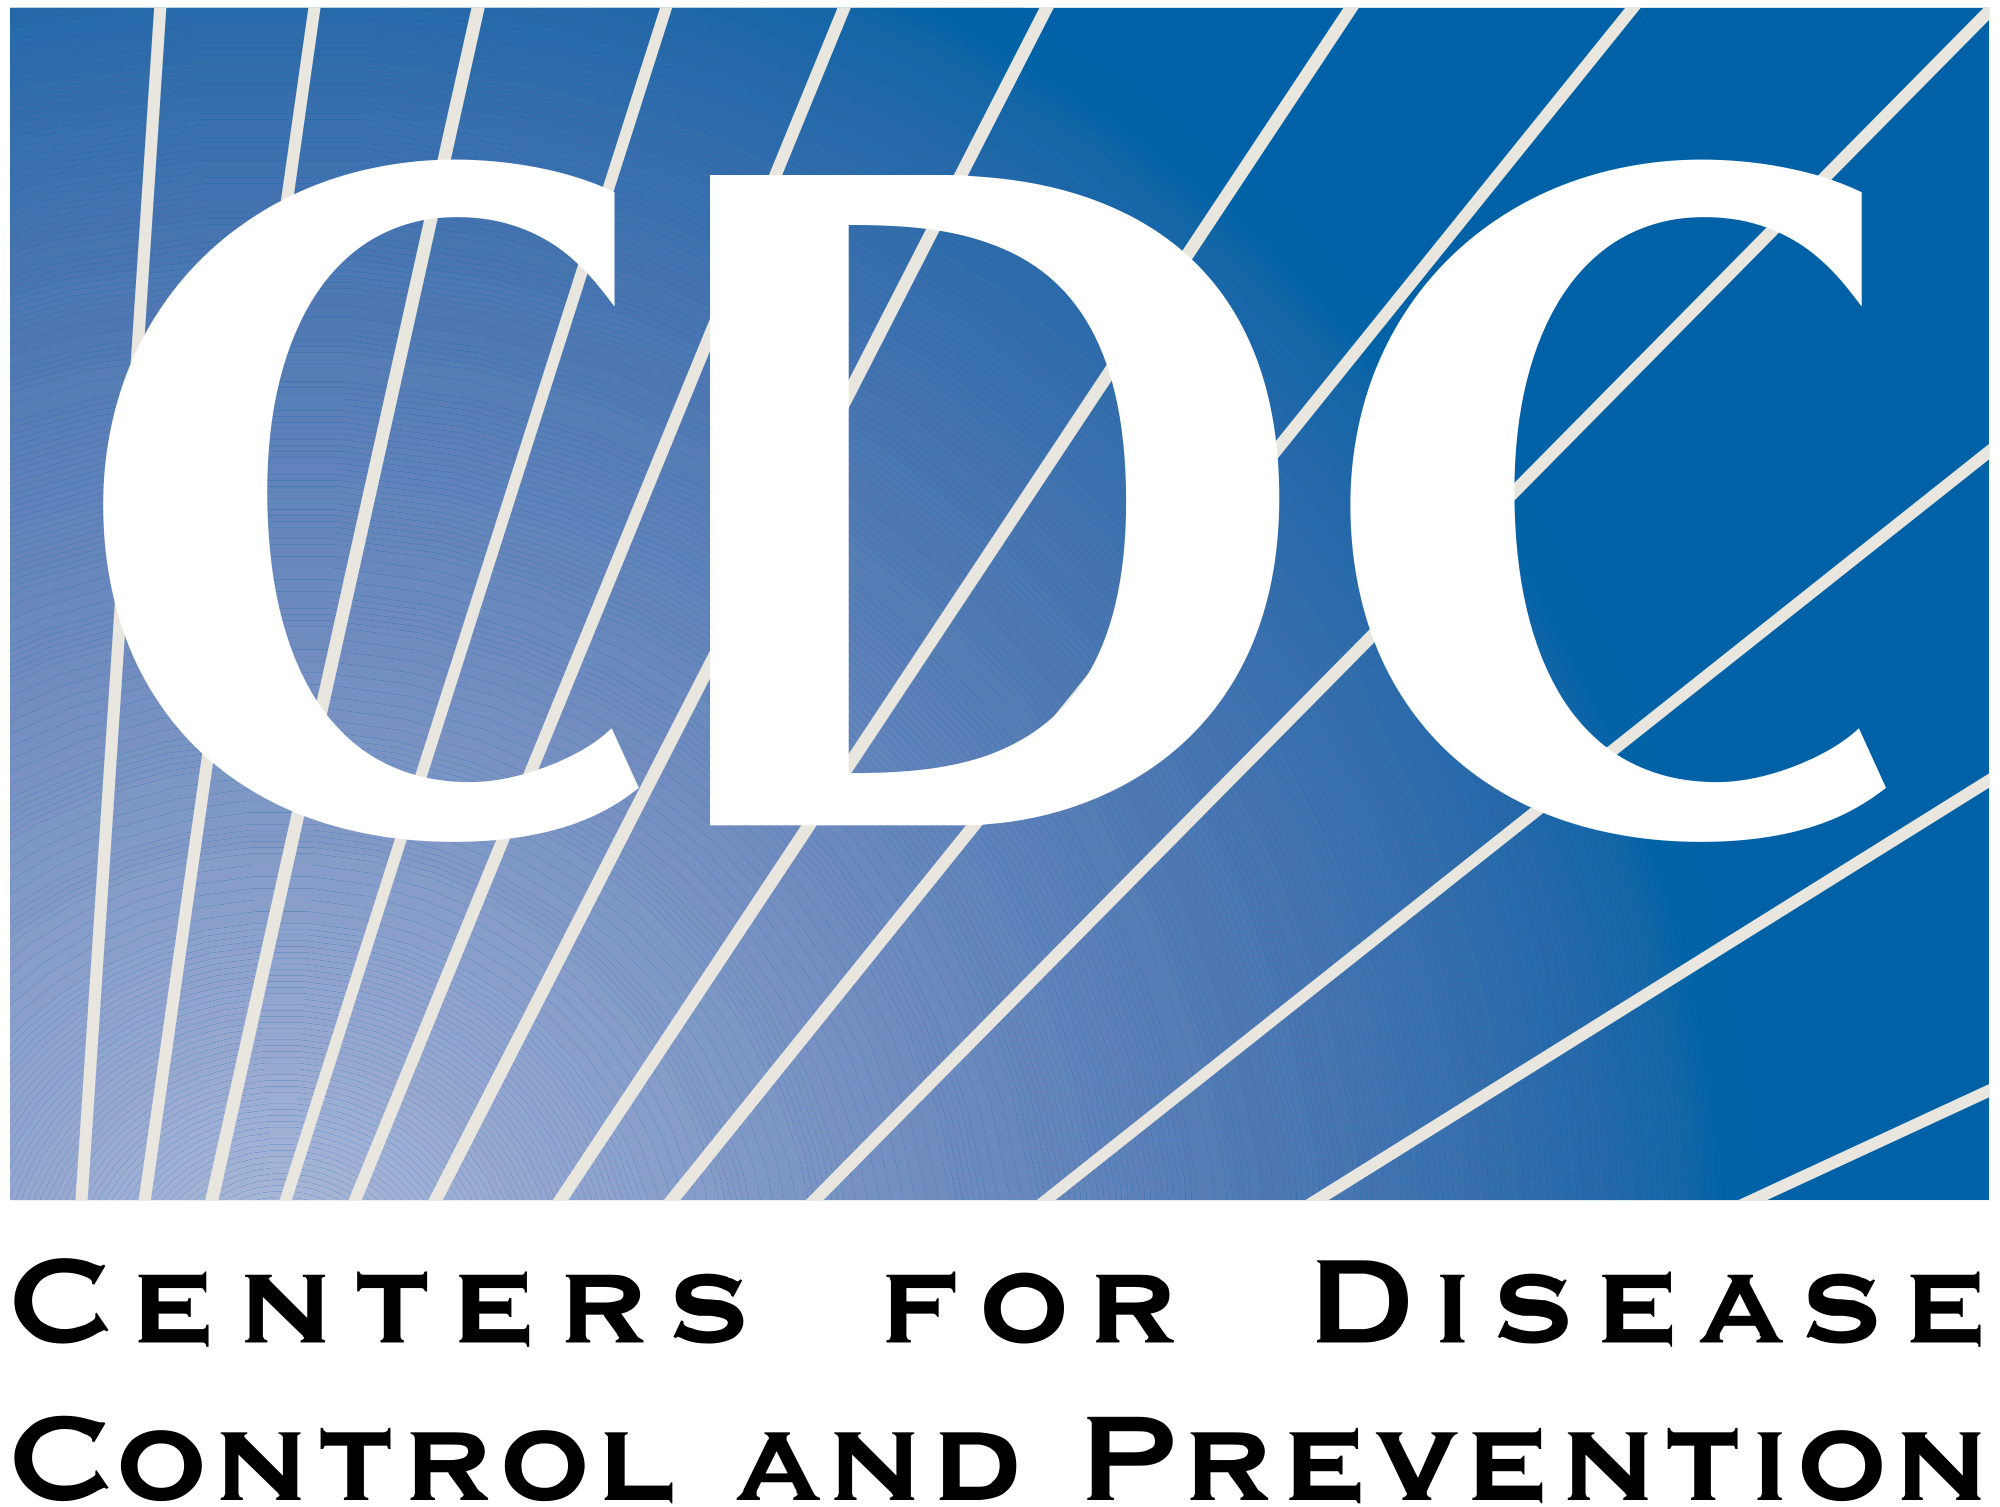 CDC reports show decreases in foodborne infections in 2014